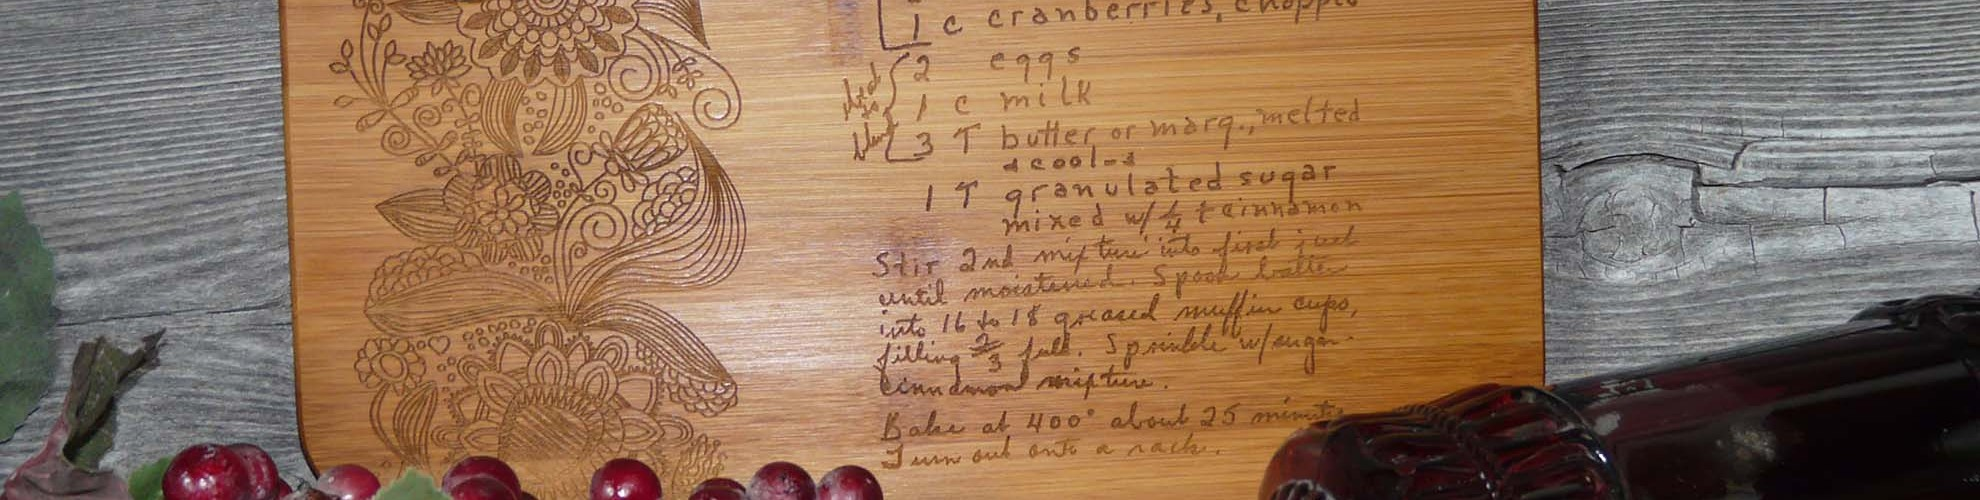 Laser Engraved Hand-written Recipe Cutting Board